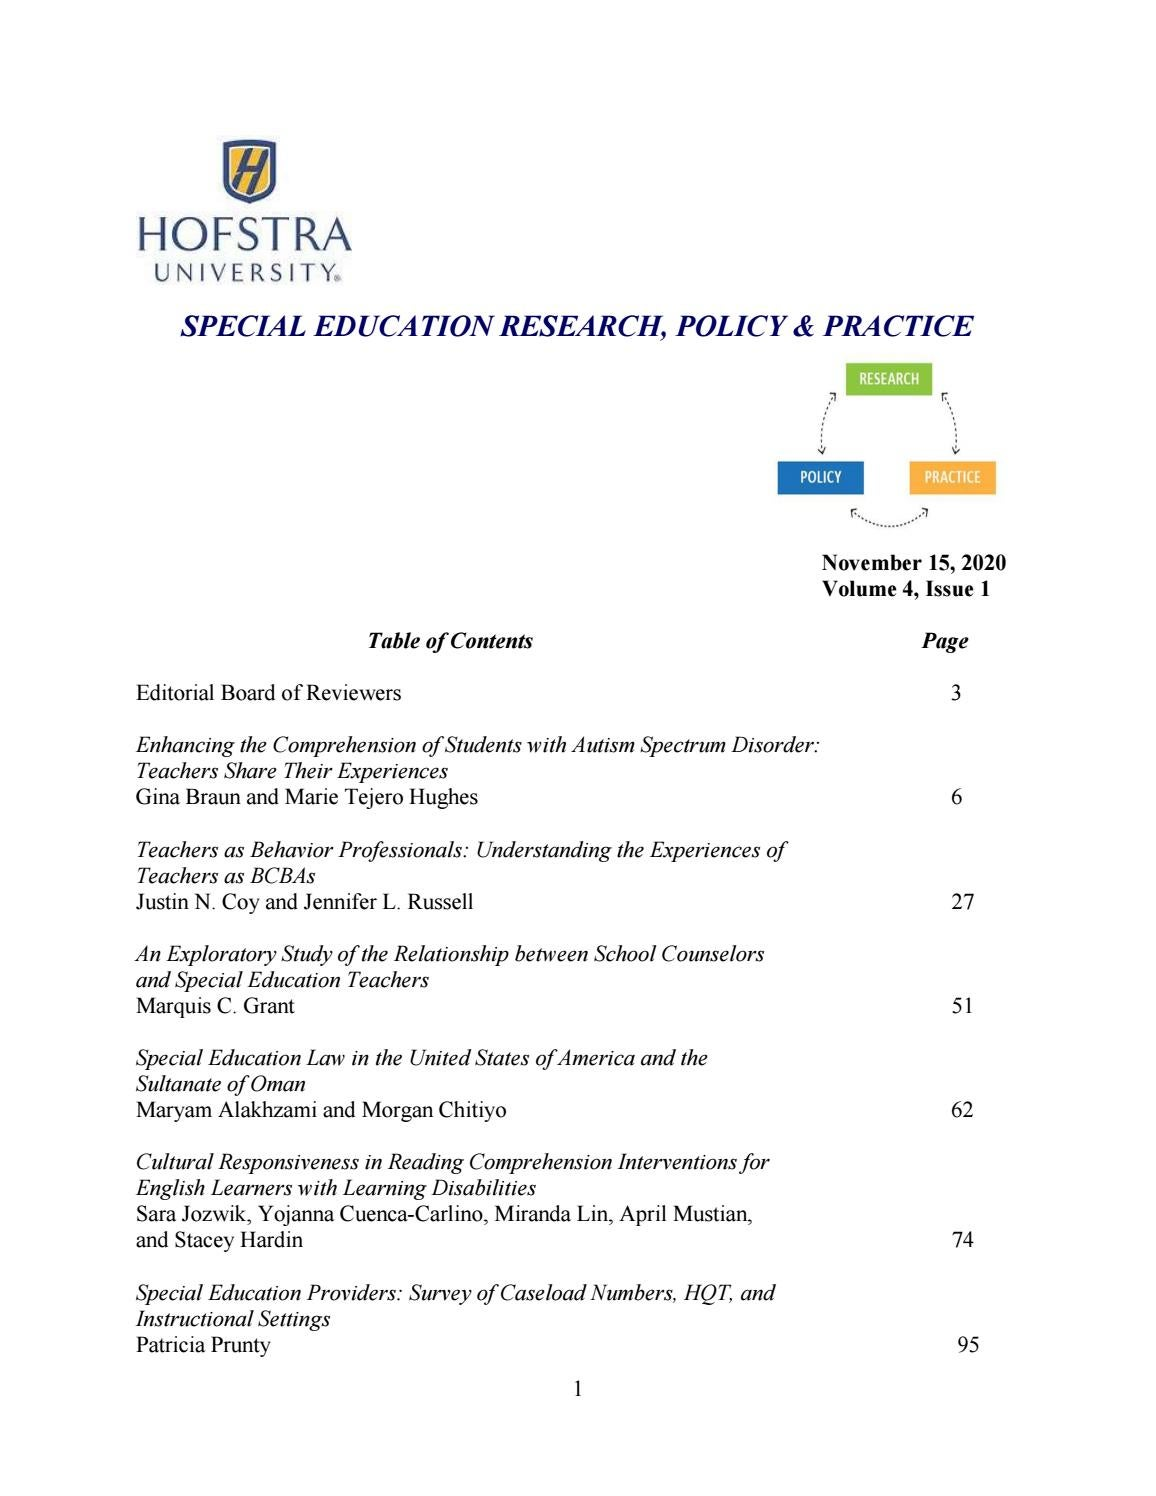 2020 Special Education Research Policy Practice By Hofstra University Issuu Walsh university sports news and features, including conference, nickname, location and official social media handles. 2020 special education research policy